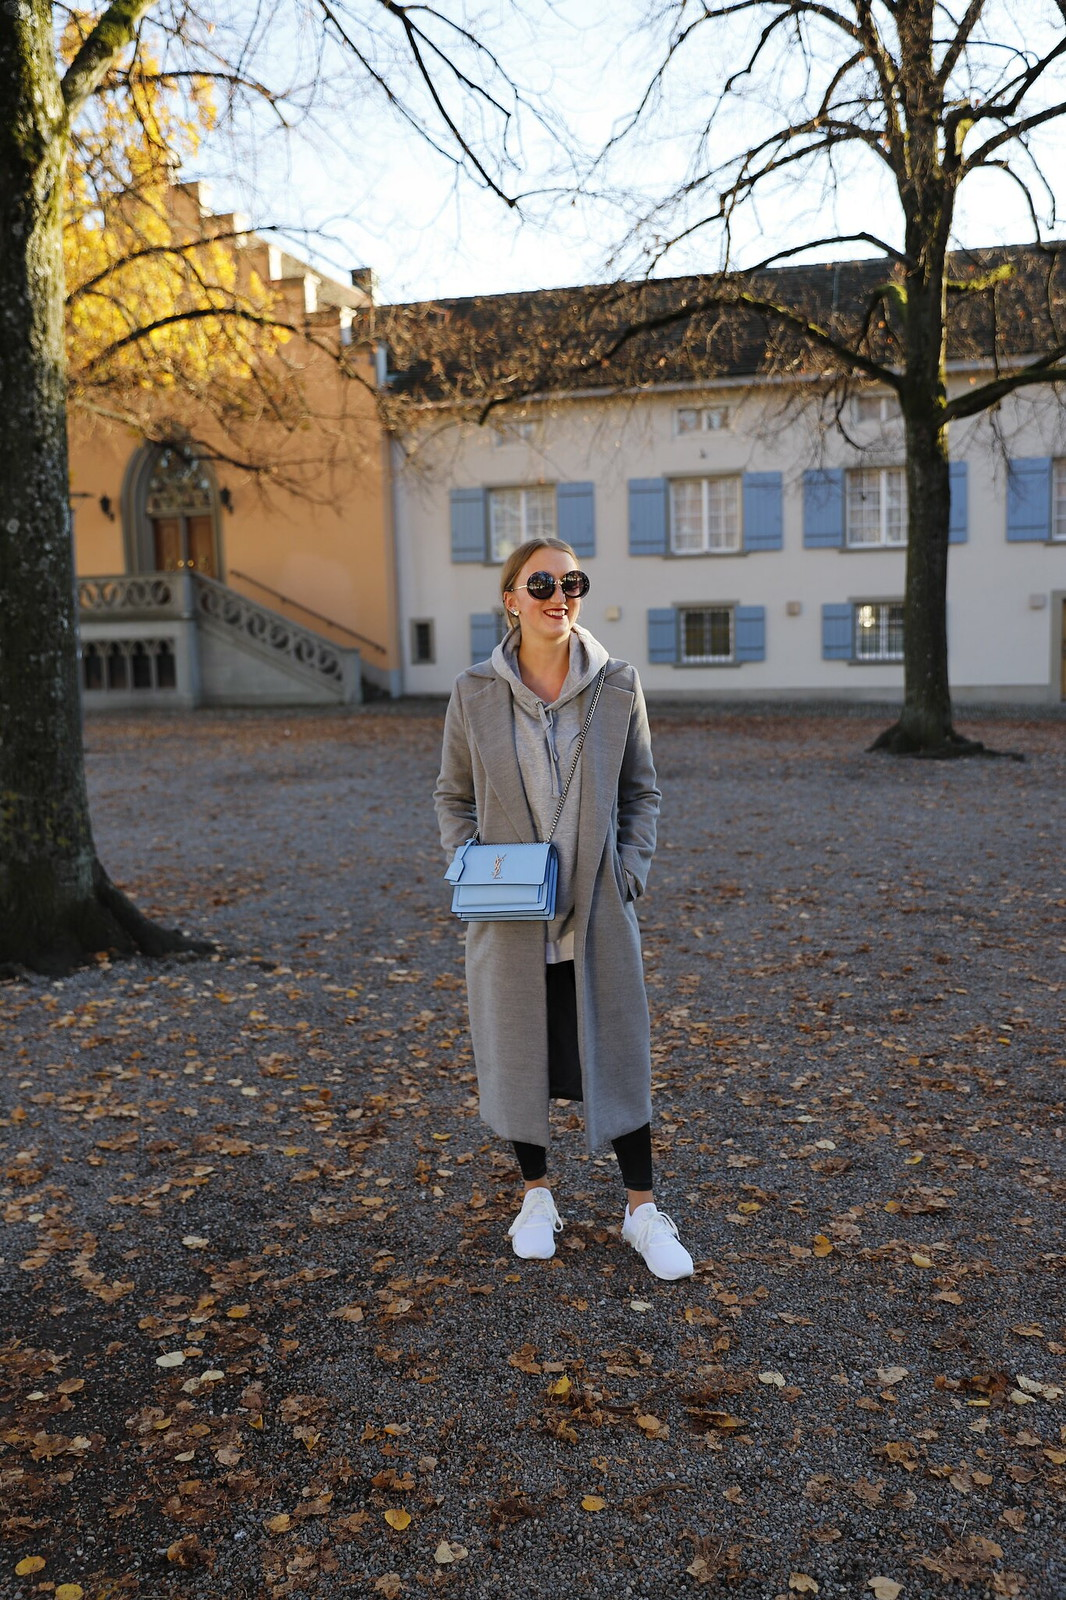 ysl-bag-and-sneakers-whole-outfit-wiebkembg